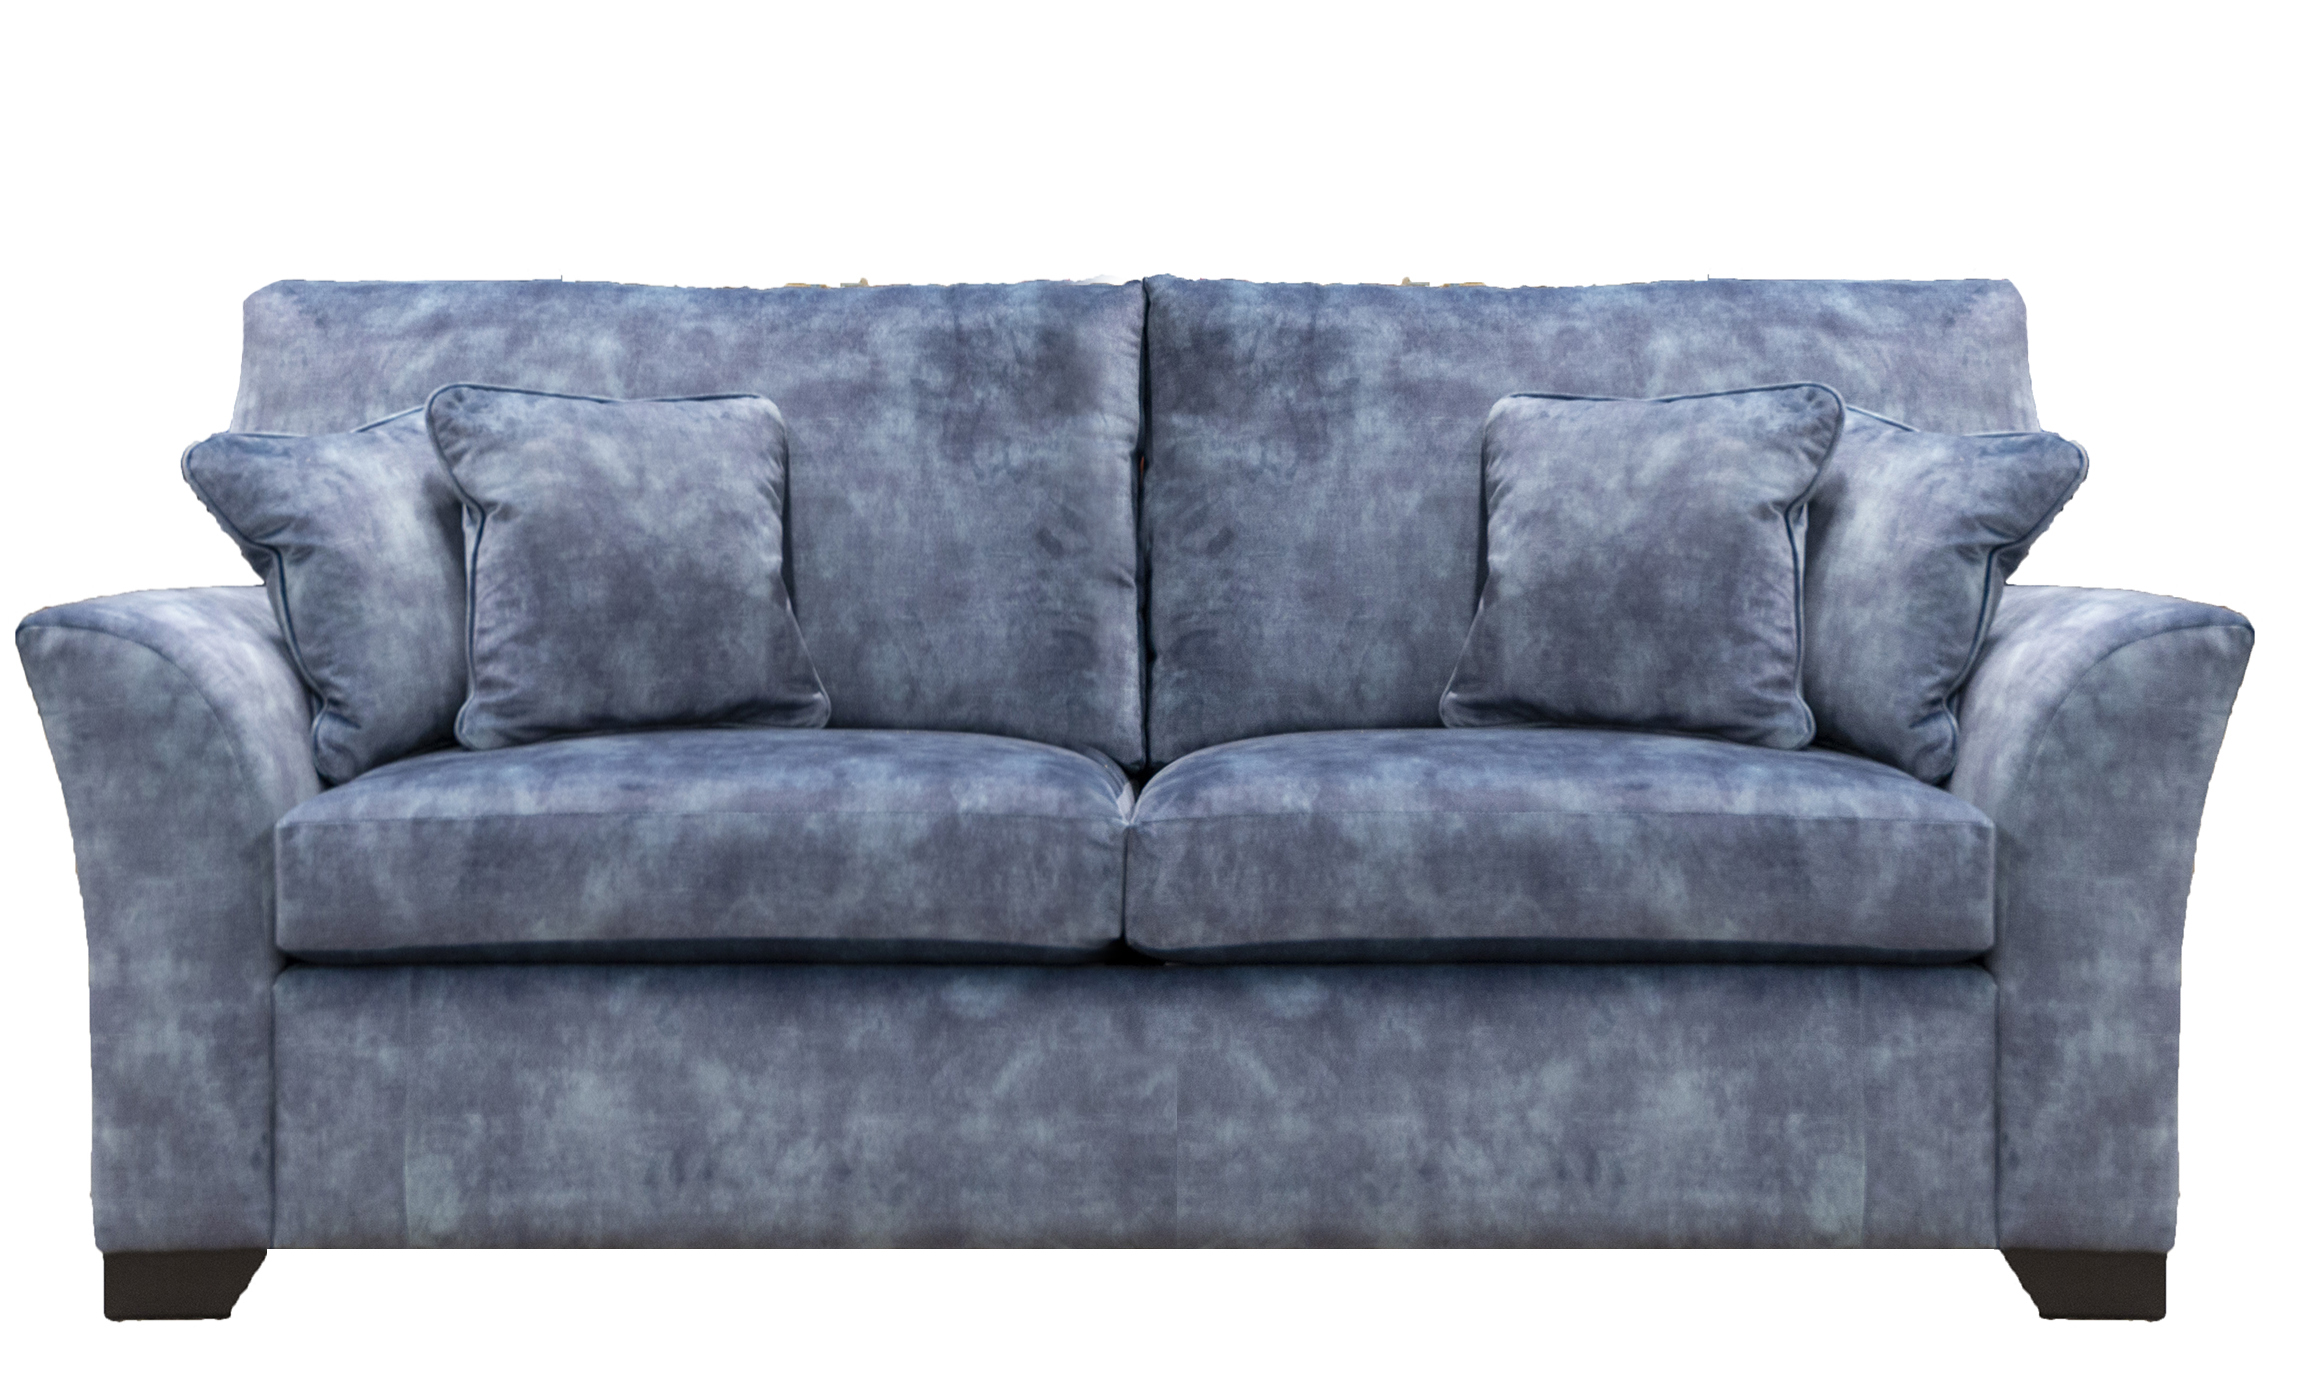 Malton 3 Seater Sofa in Lovely Atlantic, Gold Collection Fabric